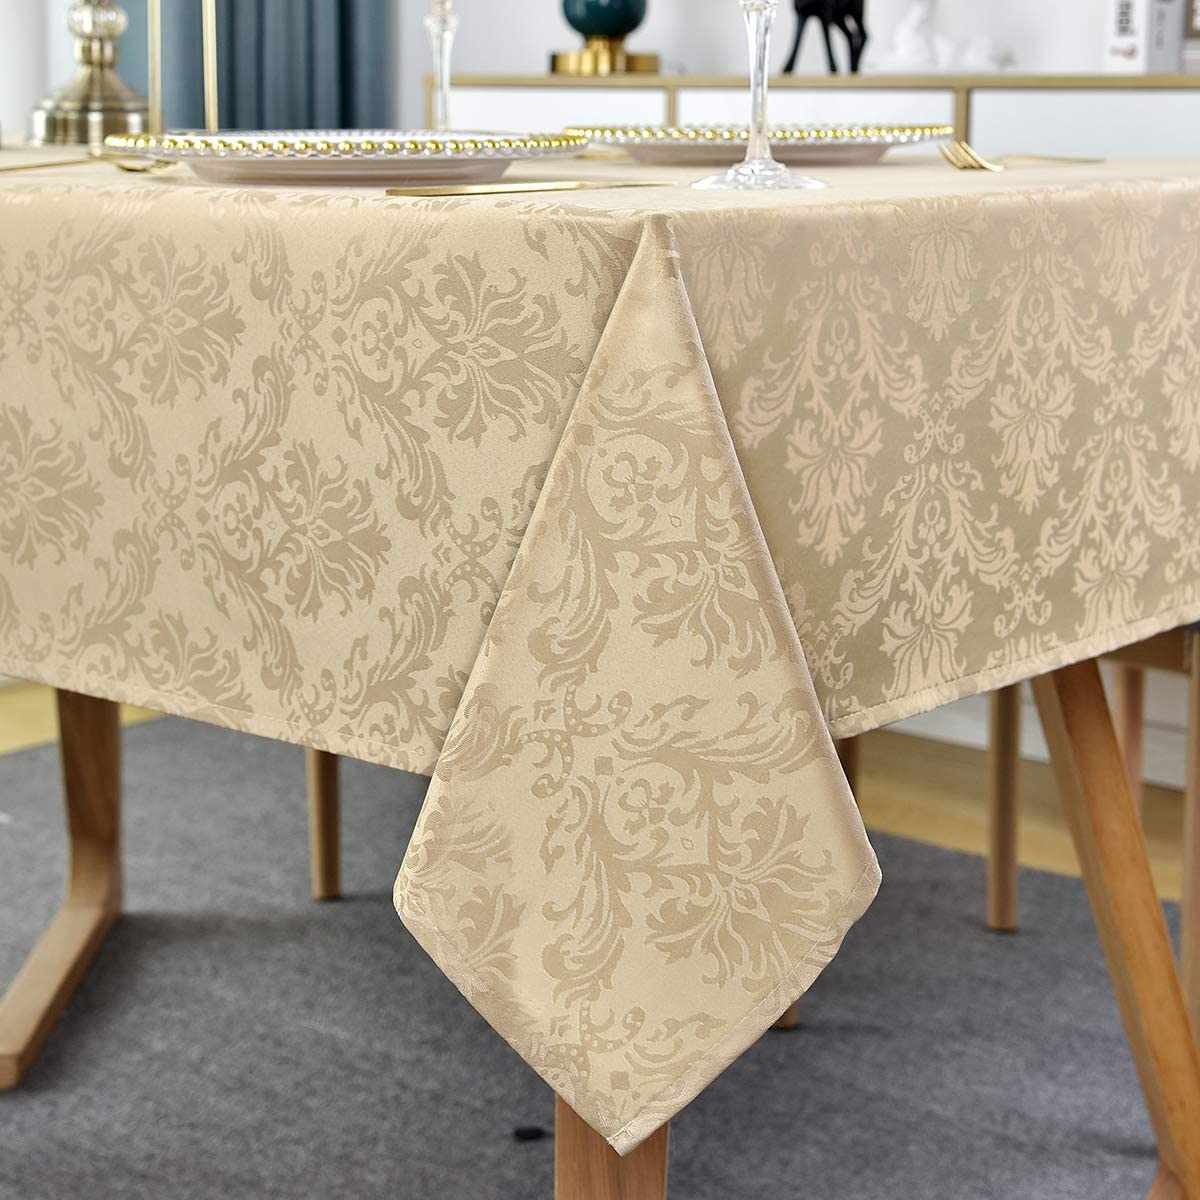 SASTYBALE Rectangle Tablecloth - 60 x 84 Inch Flax Damask Table Cloth Jacquard Design Spill Proof Wrinkle Resistant Waterproof Soft Polyester Oblong Table Cover for Kitchen Parties Tabletop